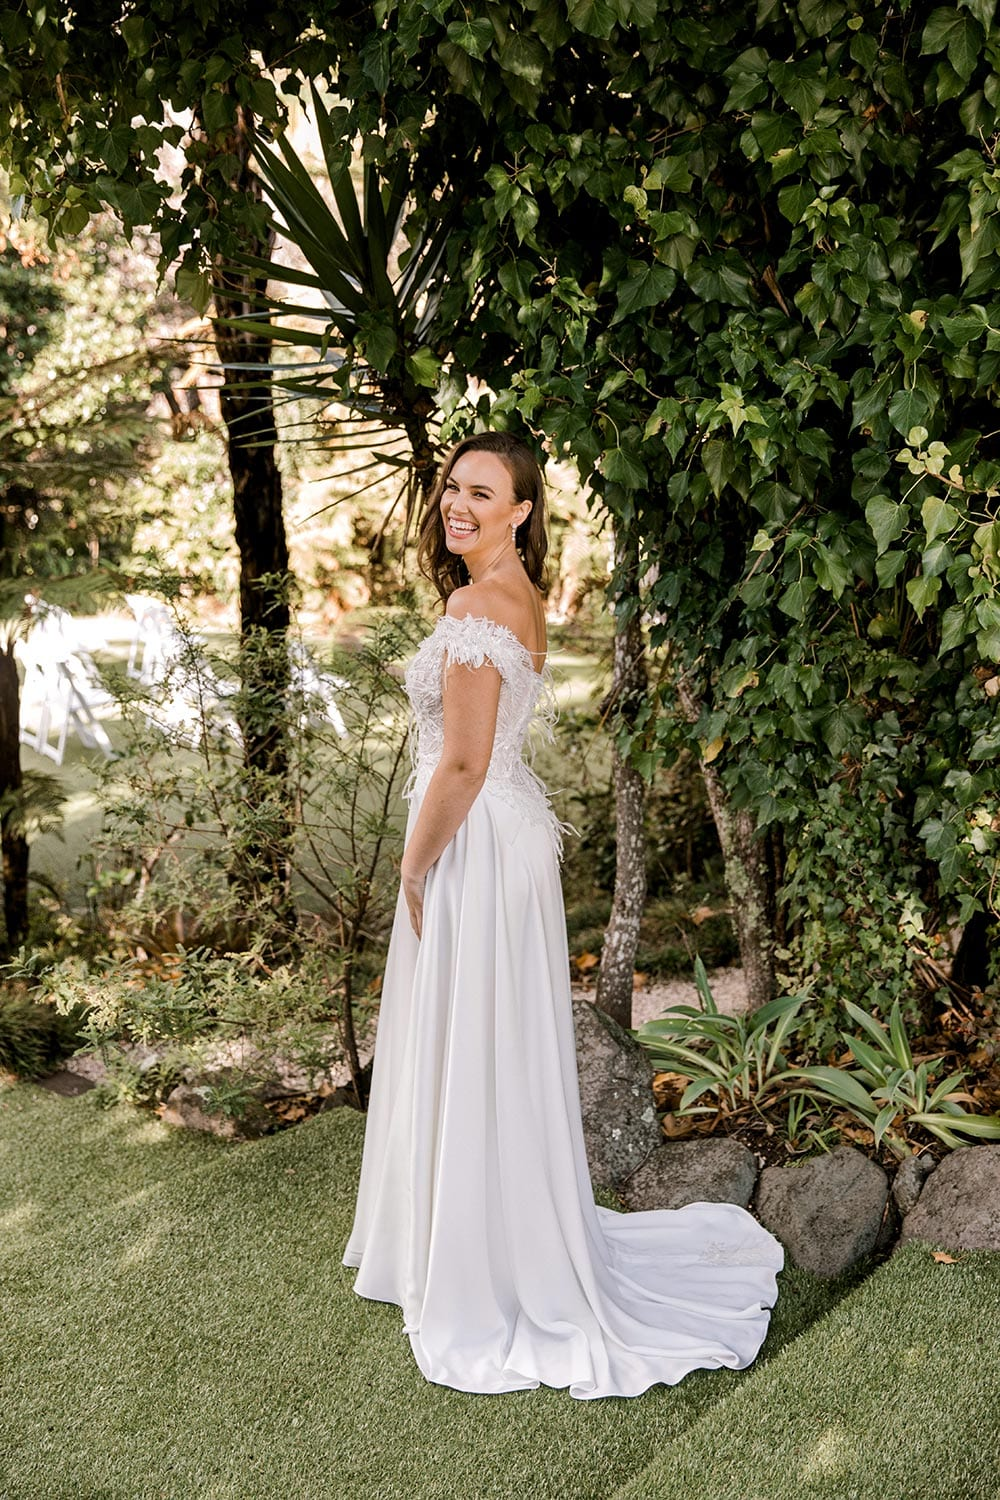 Genevive Wedding Dress from Vinka Design. The soft off-the-shoulder sleeves & semi-sheer structured bodice with hand-appliqued lace and a soft satin skirt make this a romantic & dreamy wedding dress. Full length portrait from the side with train, photographed at Tui Hills.